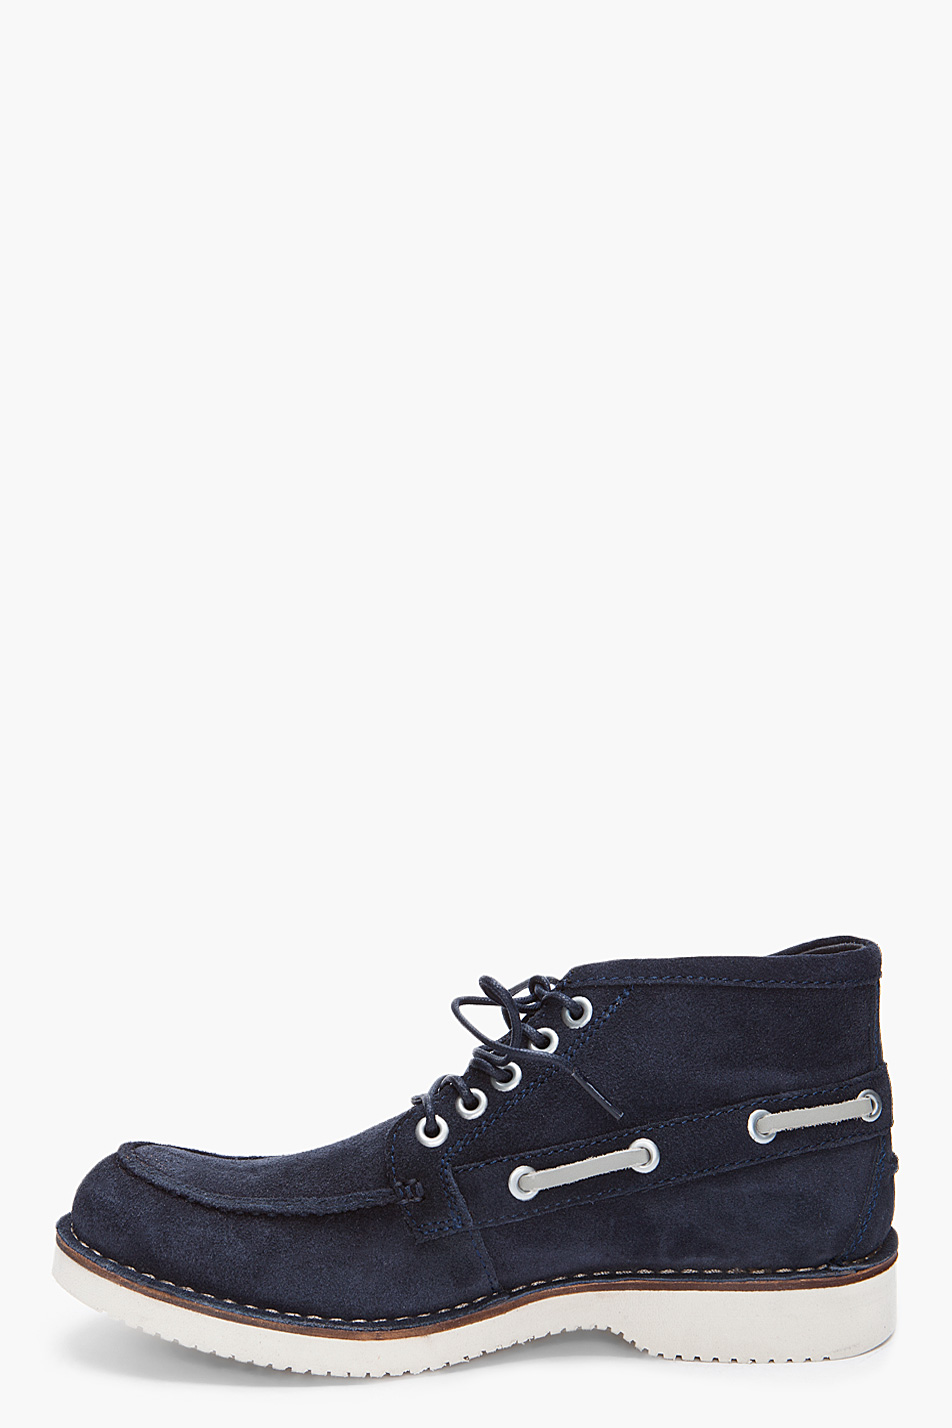 Lyst G Star Raw Navy Garrett Ii Shoes In Blue For Men